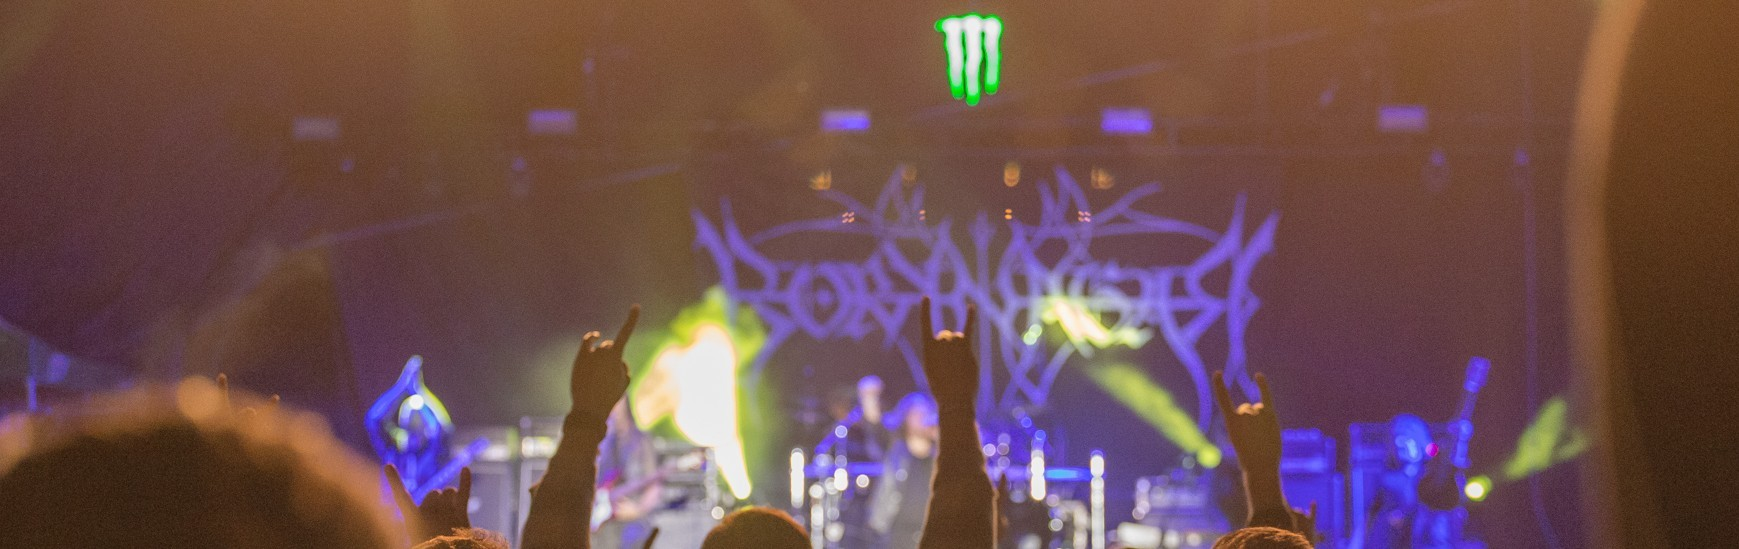 Event Photos from Rockstadt Extreme Fest 2016. Imagery taken by Monster Energy Employee Victor Carapcea.